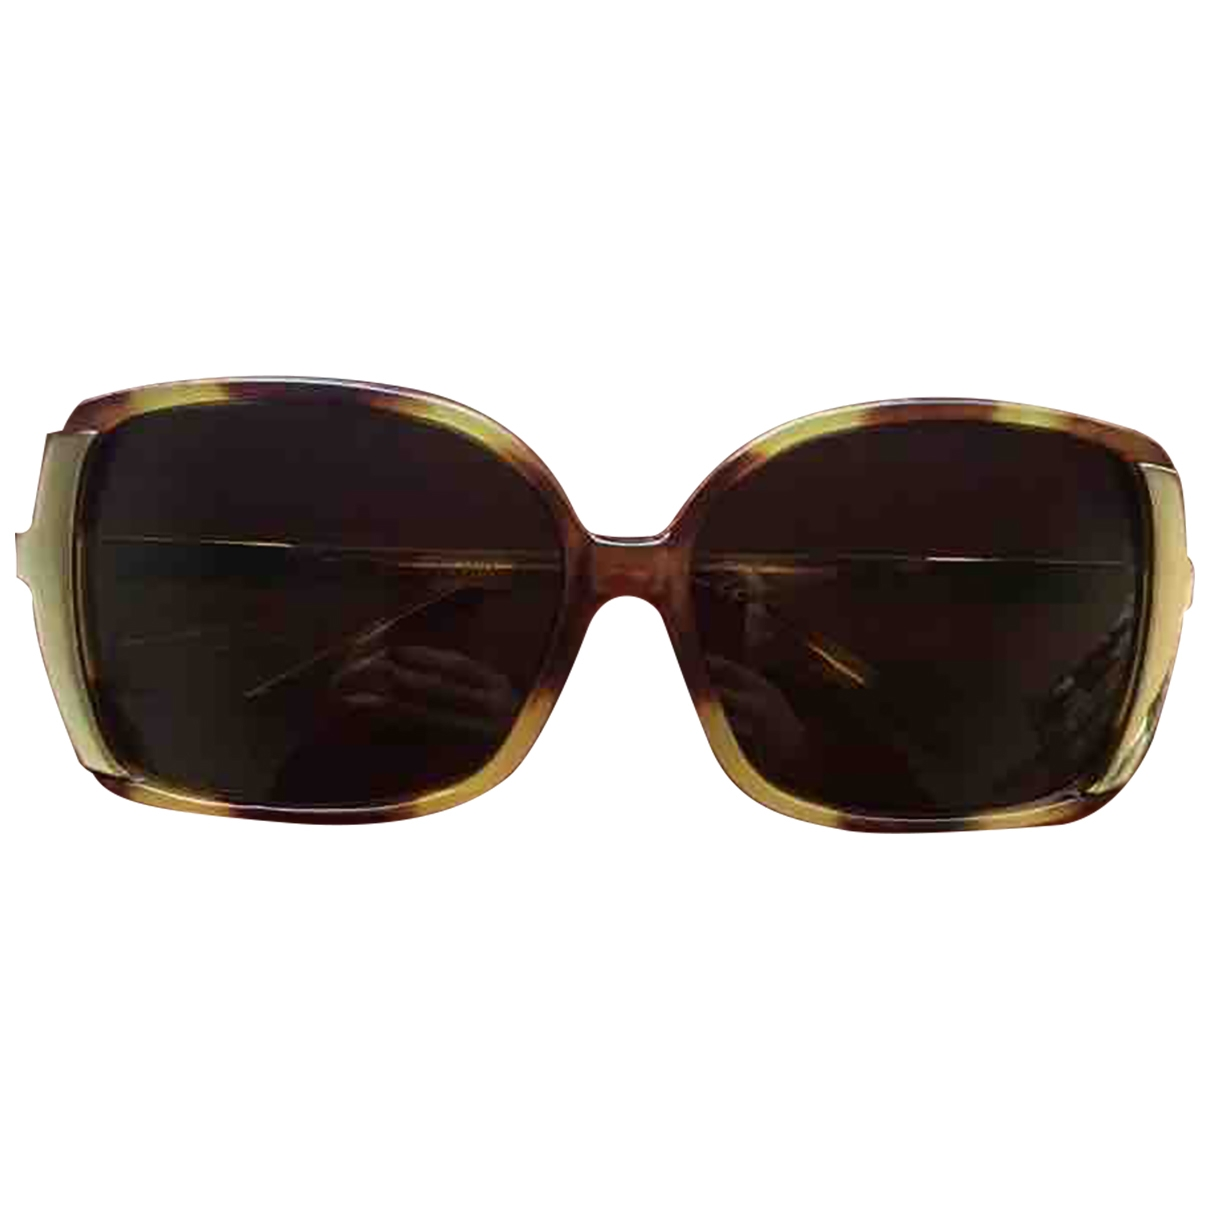 Gianfranco Ferré \N Brown Sunglasses for Women \N